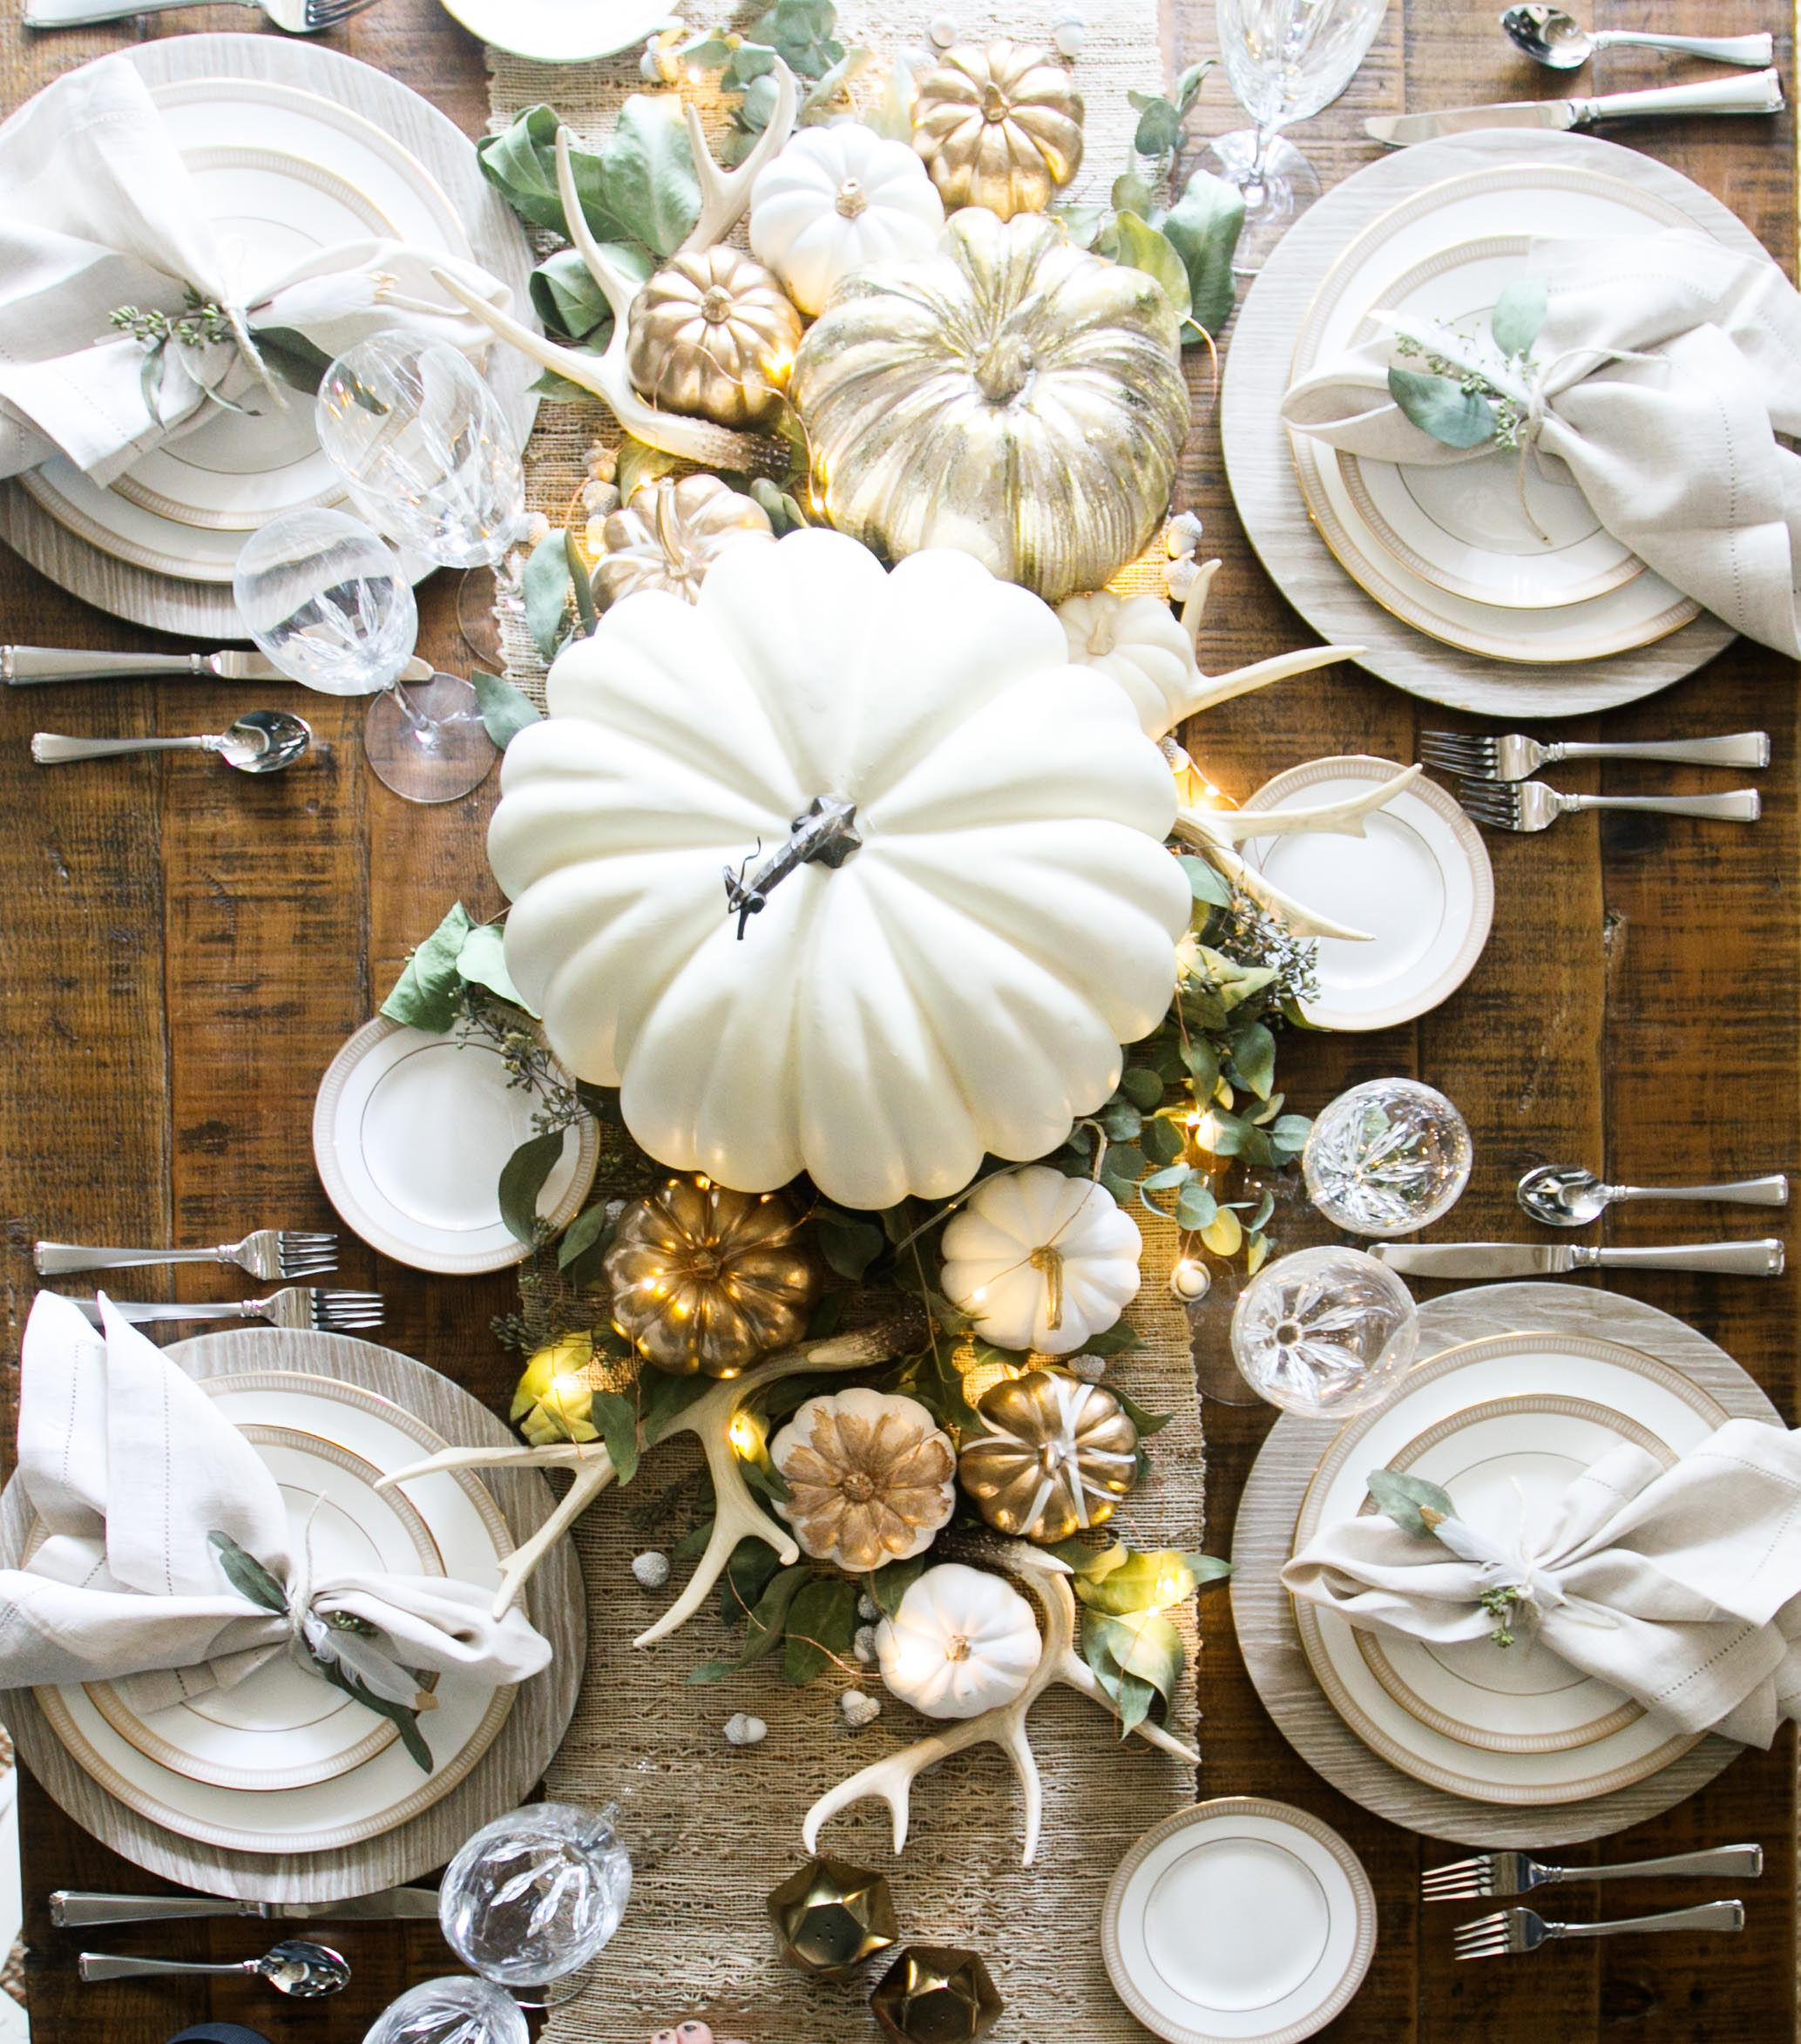 luxurious thanksgiving tablescapes white luxury rustic table distressed wood antlers busy decor warm tones white gold table setting thanksgiving 2017 holidays